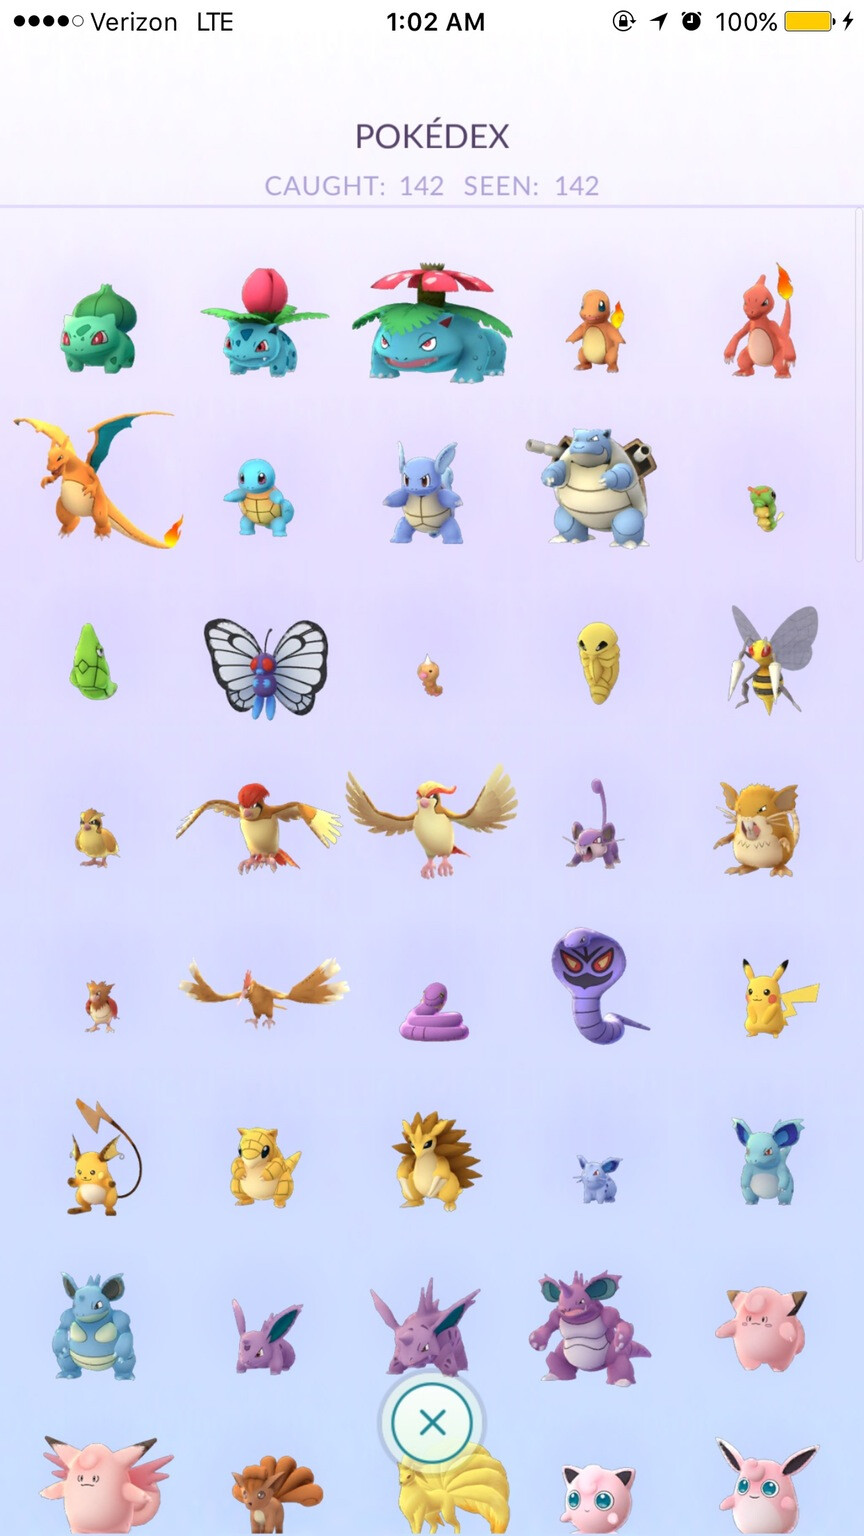 This is how the almost full Pokédex looks - Someone already caught all the 142 wild Pokémon roaming the U.S.